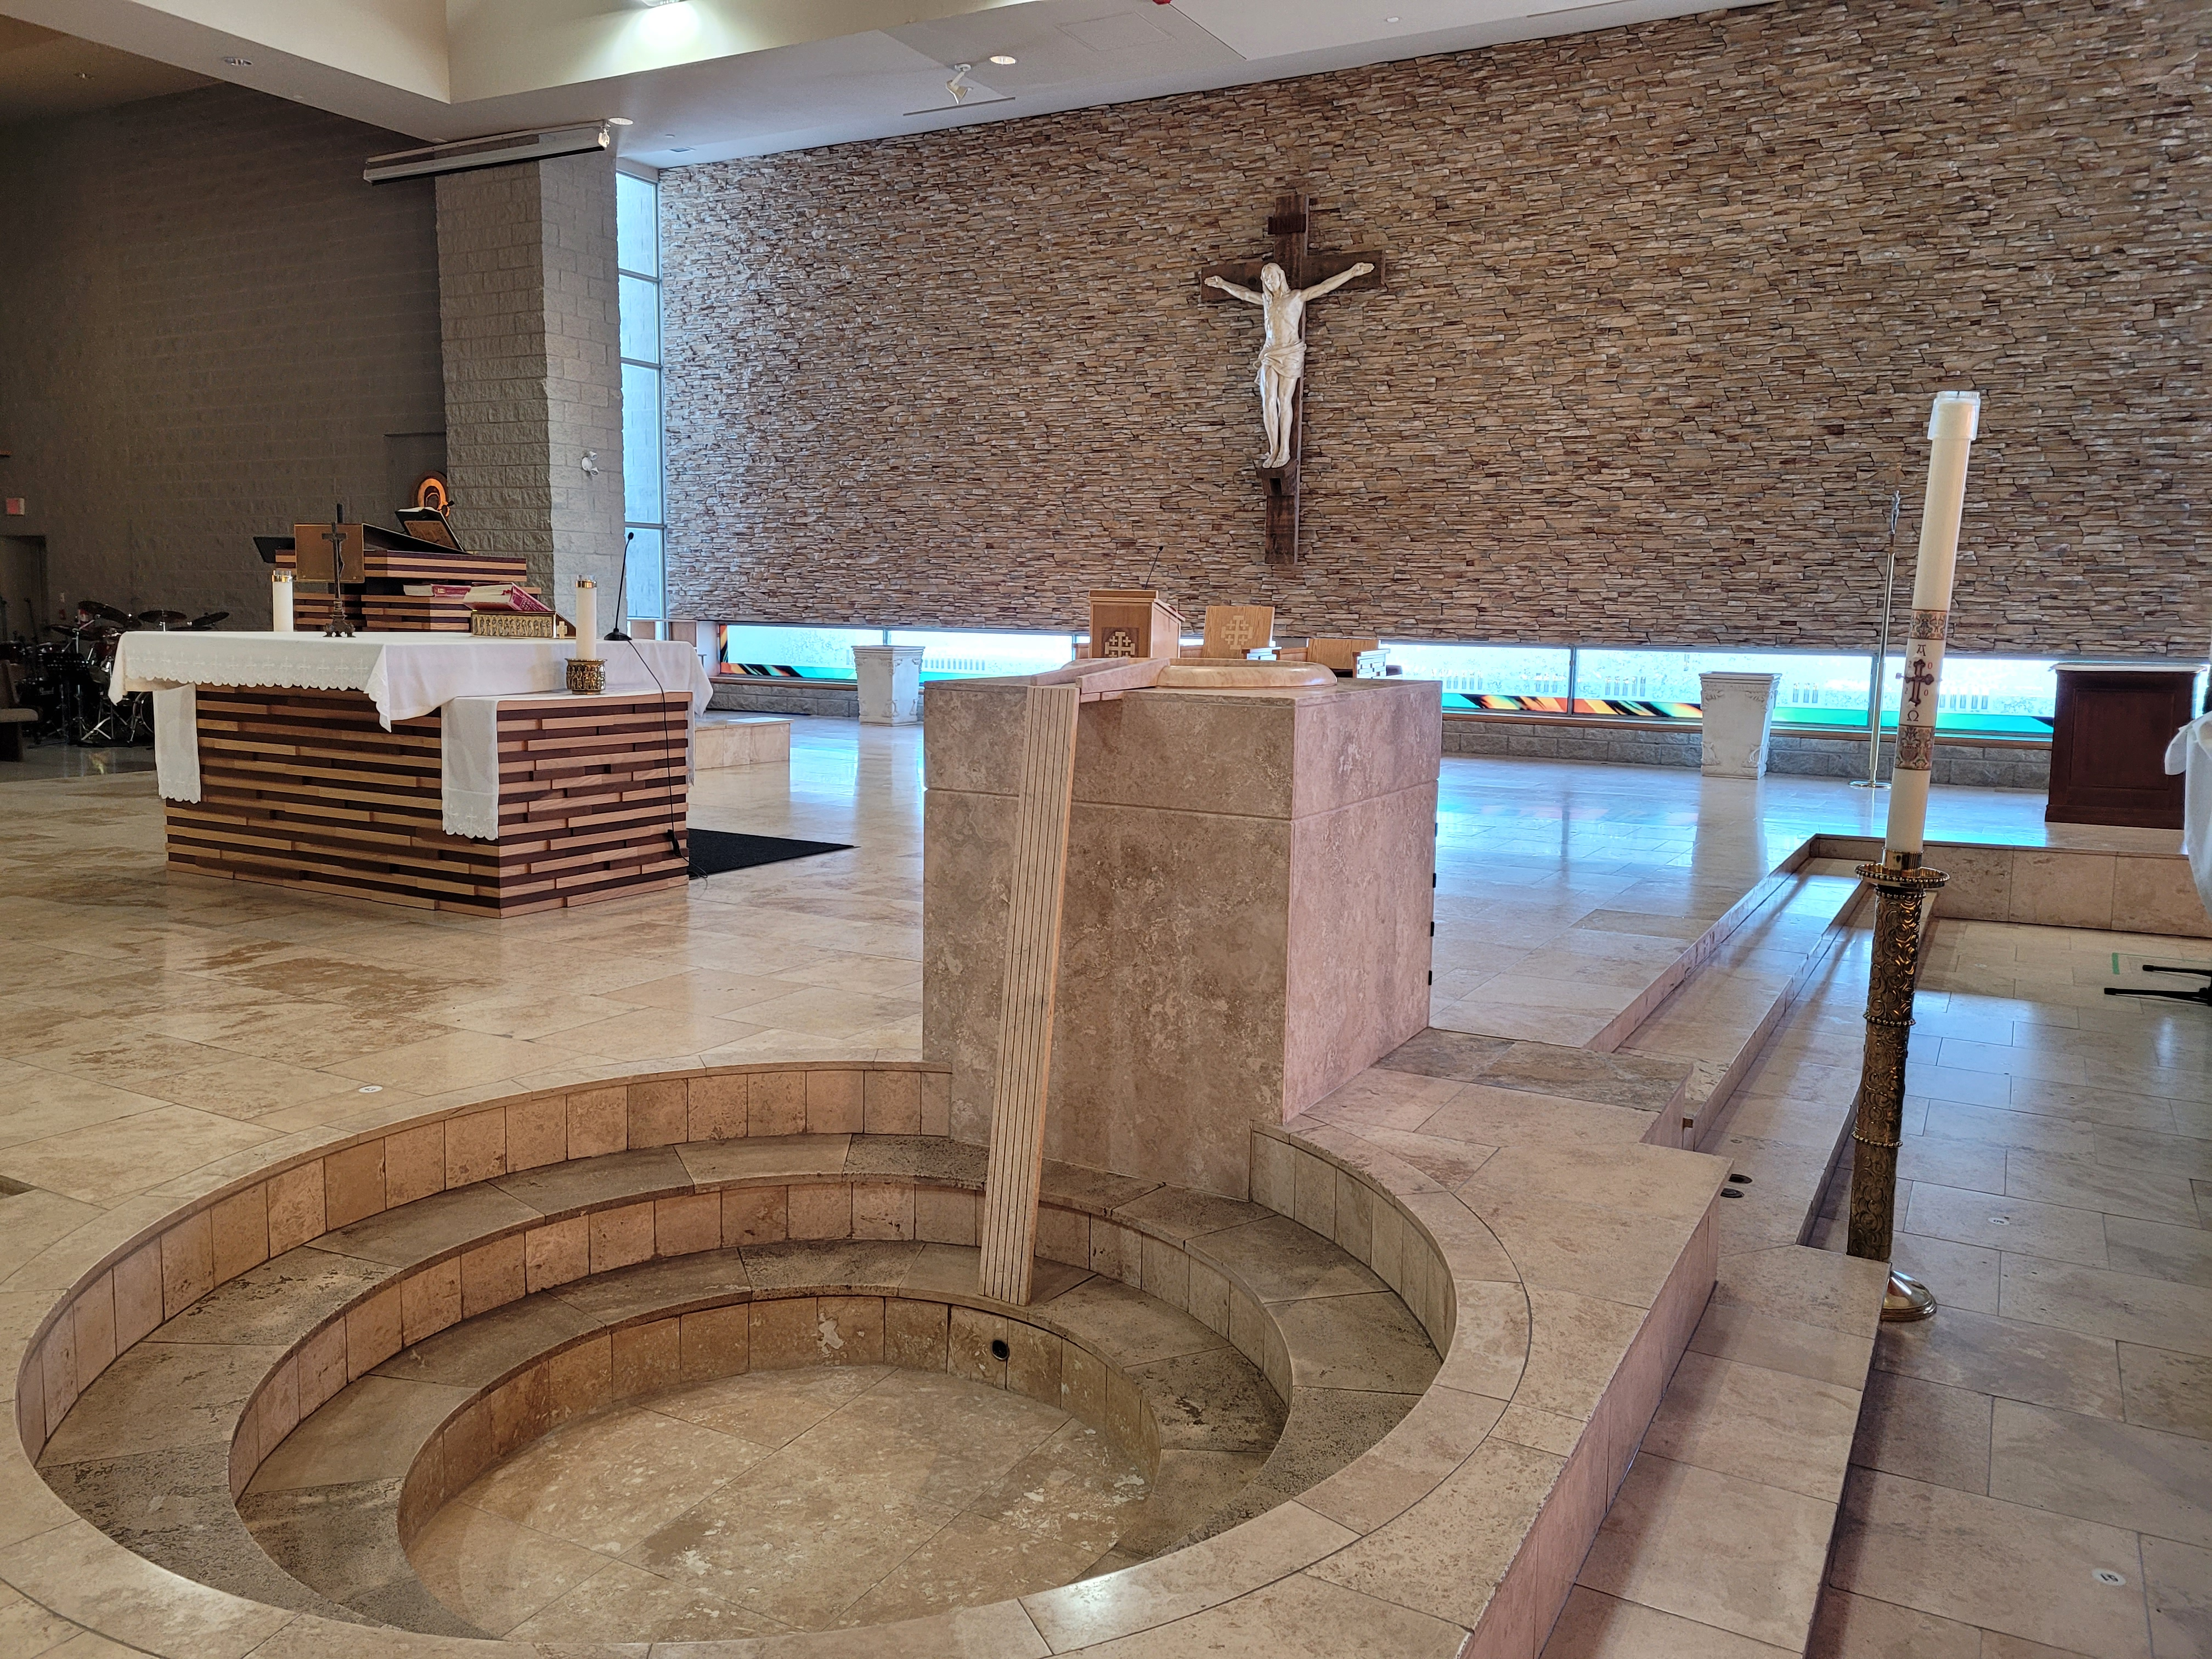 SMDY Baptismal Fount and Altar